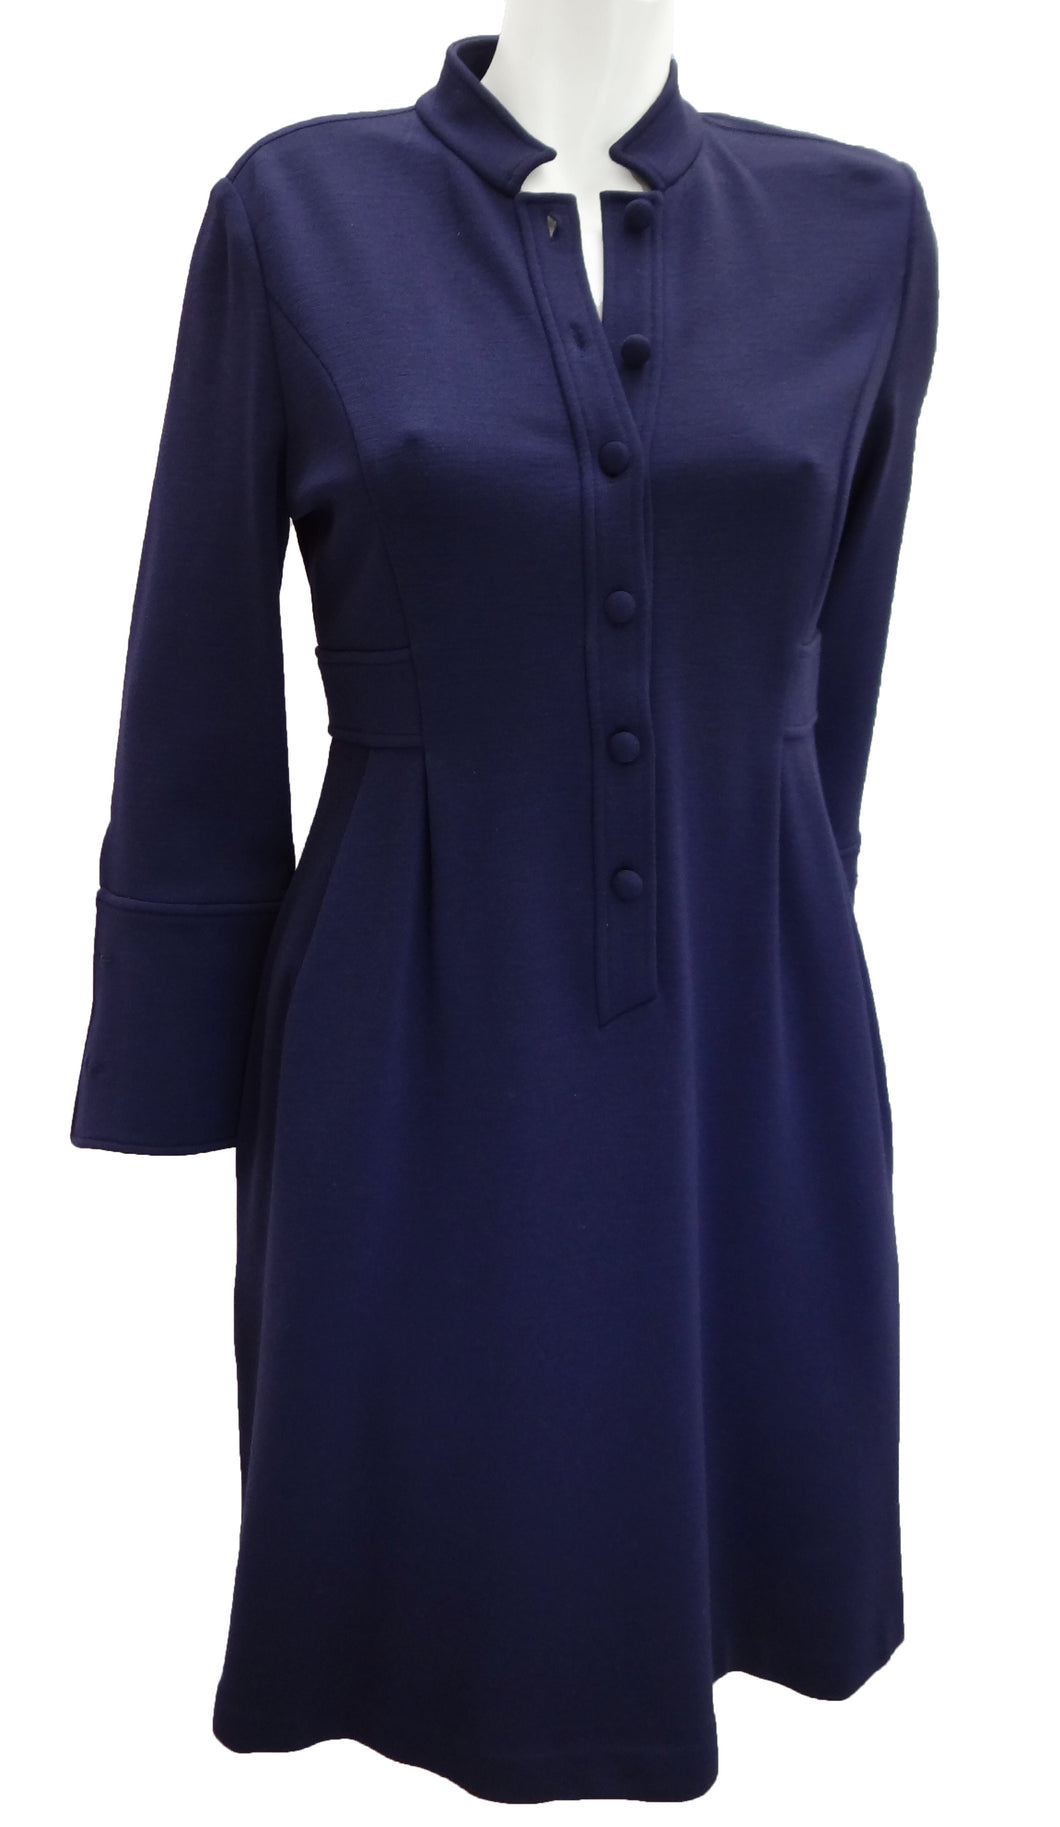 Diane von Furstenberg Purple Wool Shirt Dress UK10